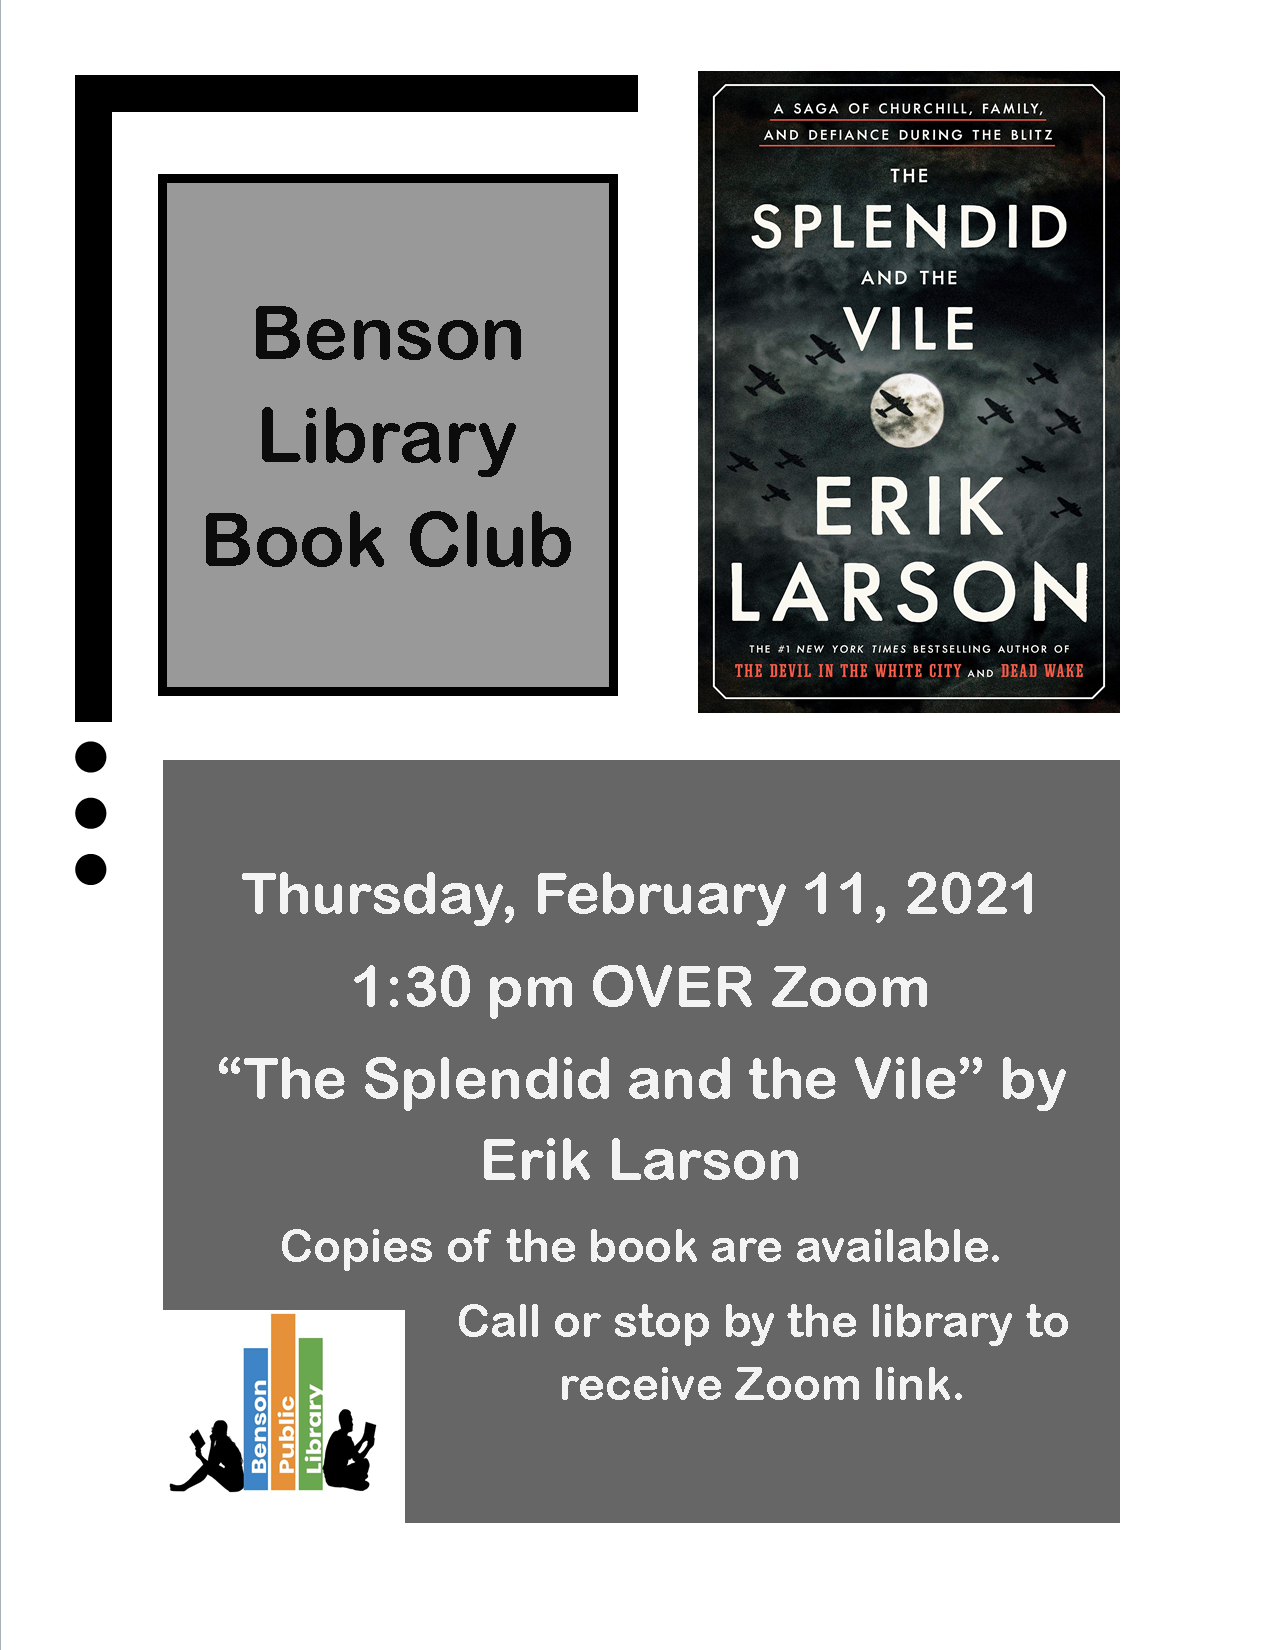 The library's book club will meet on Thursday, February 11th at 1:30 pm over Zoom. The book this month is 'The Splendid and the Vile' by Erik Larson. Copies are available at the library.